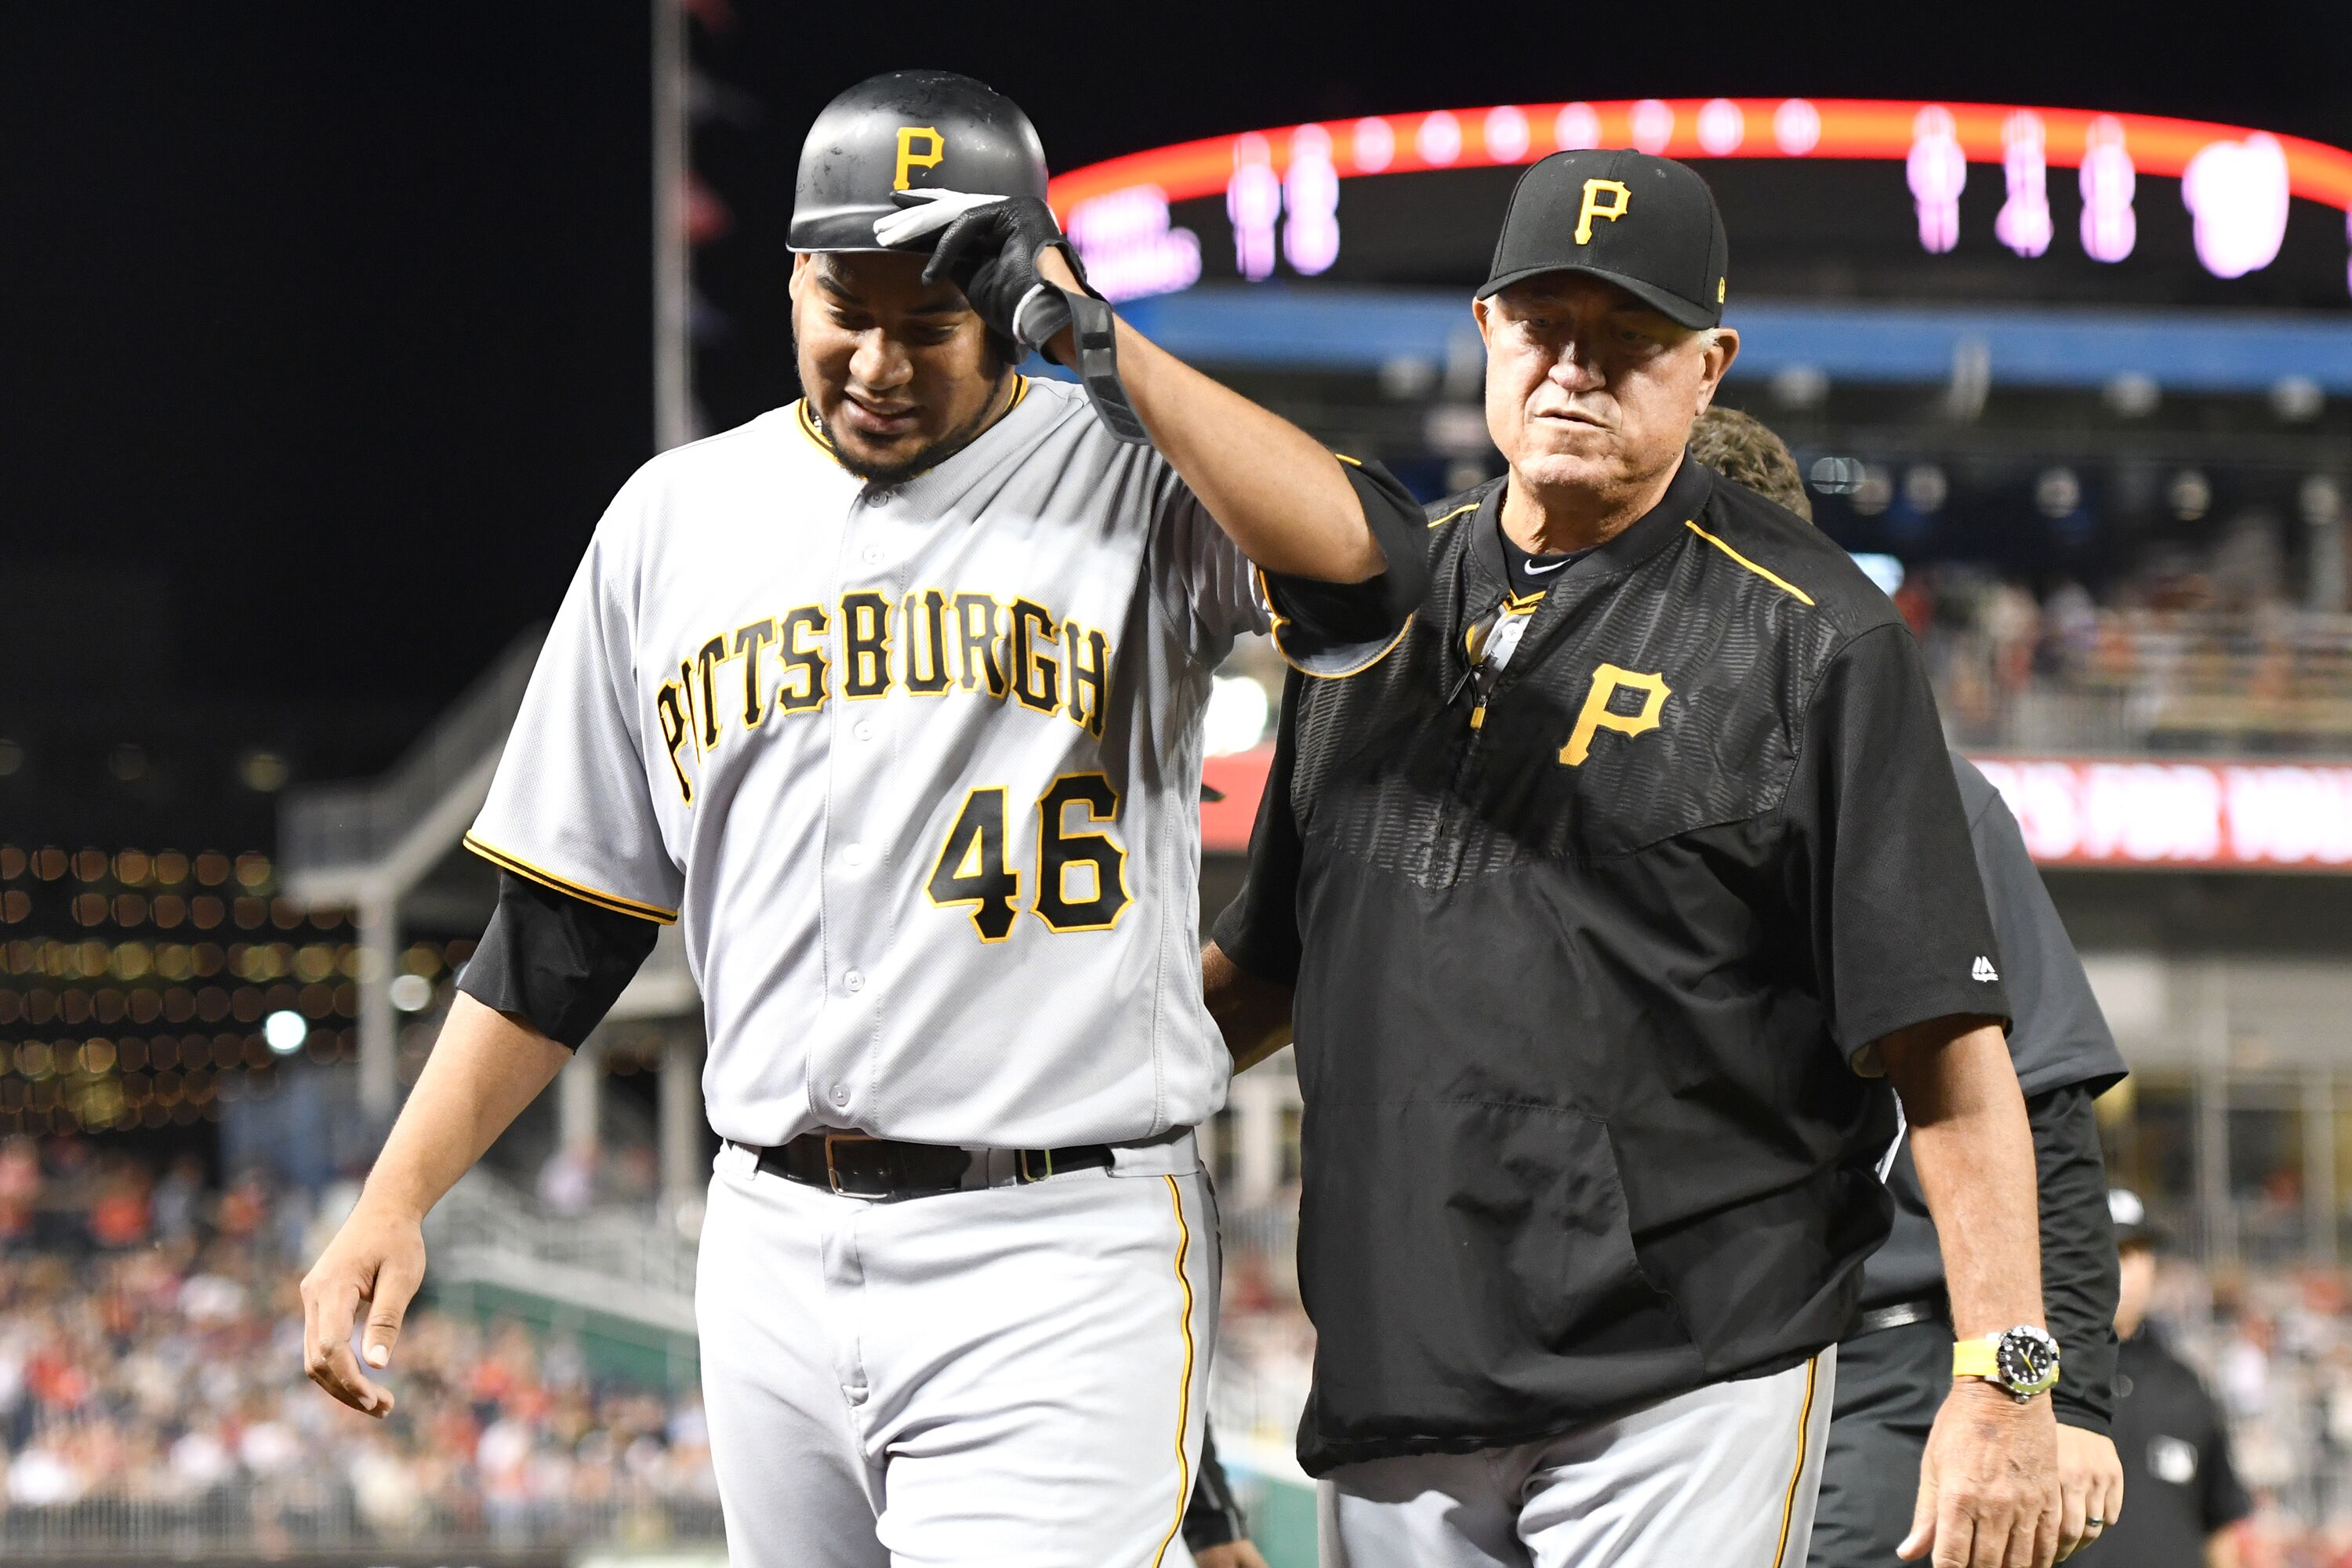 855295538-pittsburgh-pirates-v-washington-nationals.jpg